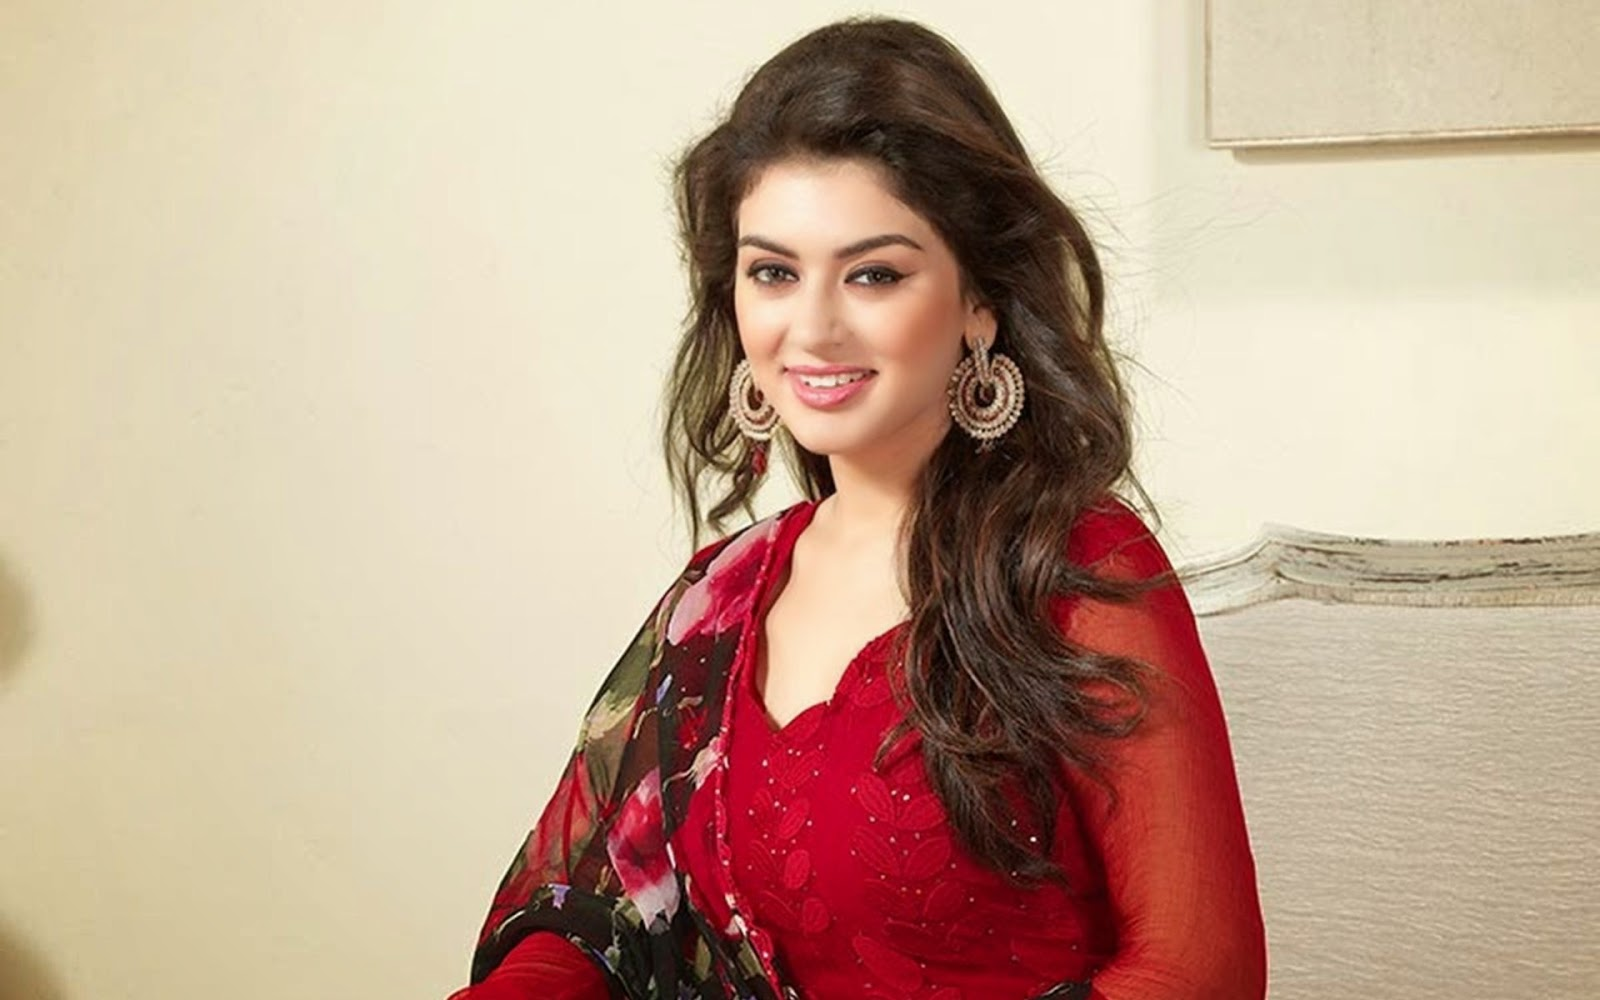 free stars wallpaper: hansika motwani hd wallpaper